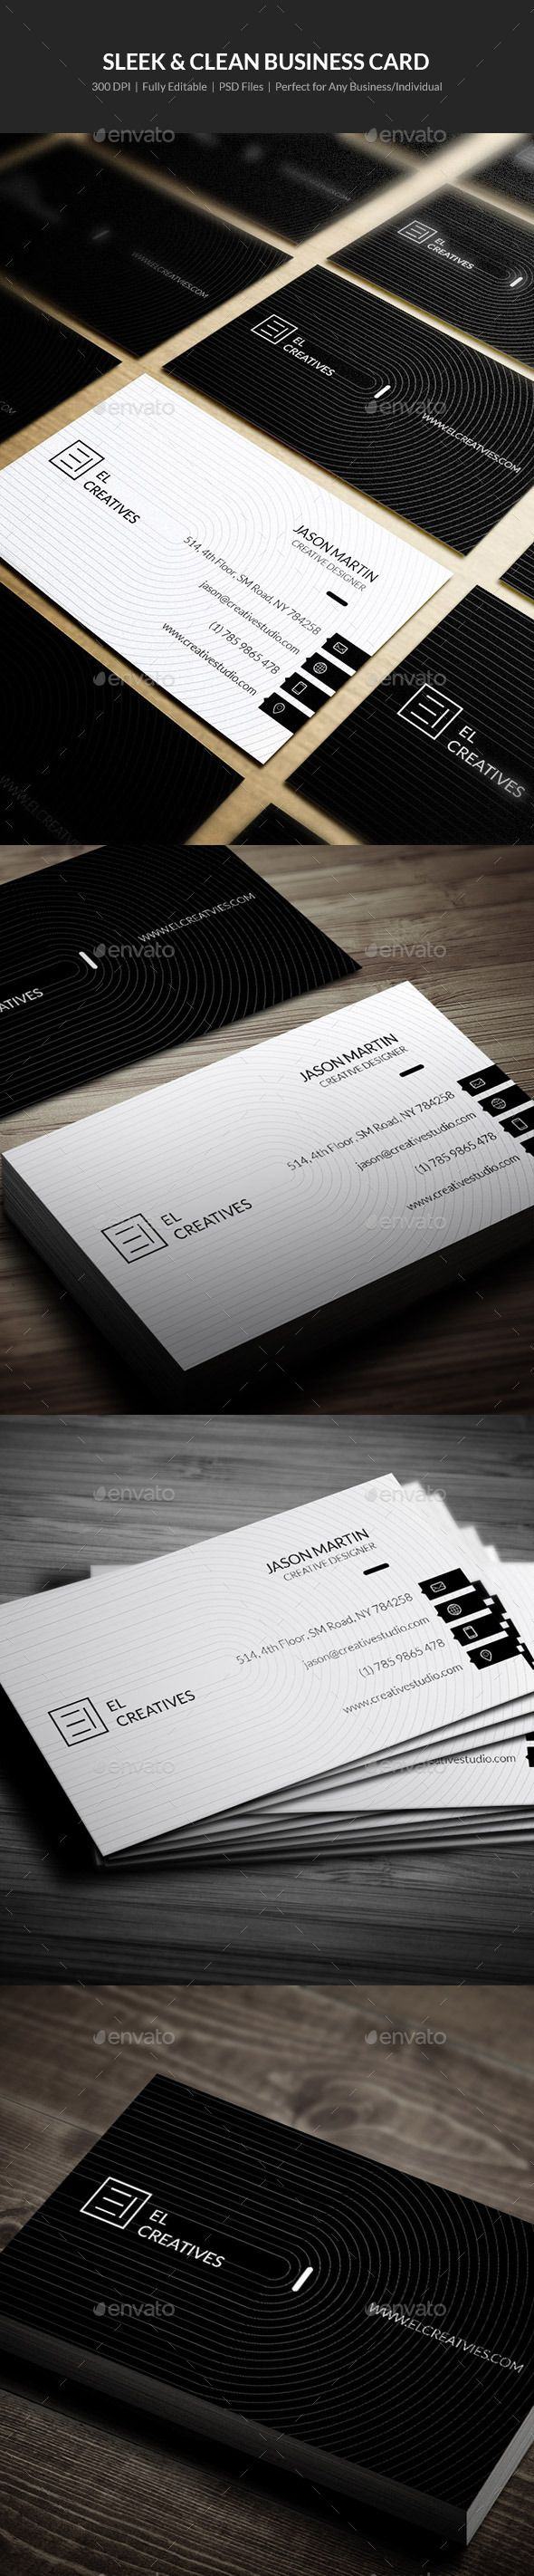 Best 25 cleaning business cards ideas on pinterest visit cards sleek clean business card 15 magicingreecefo Gallery